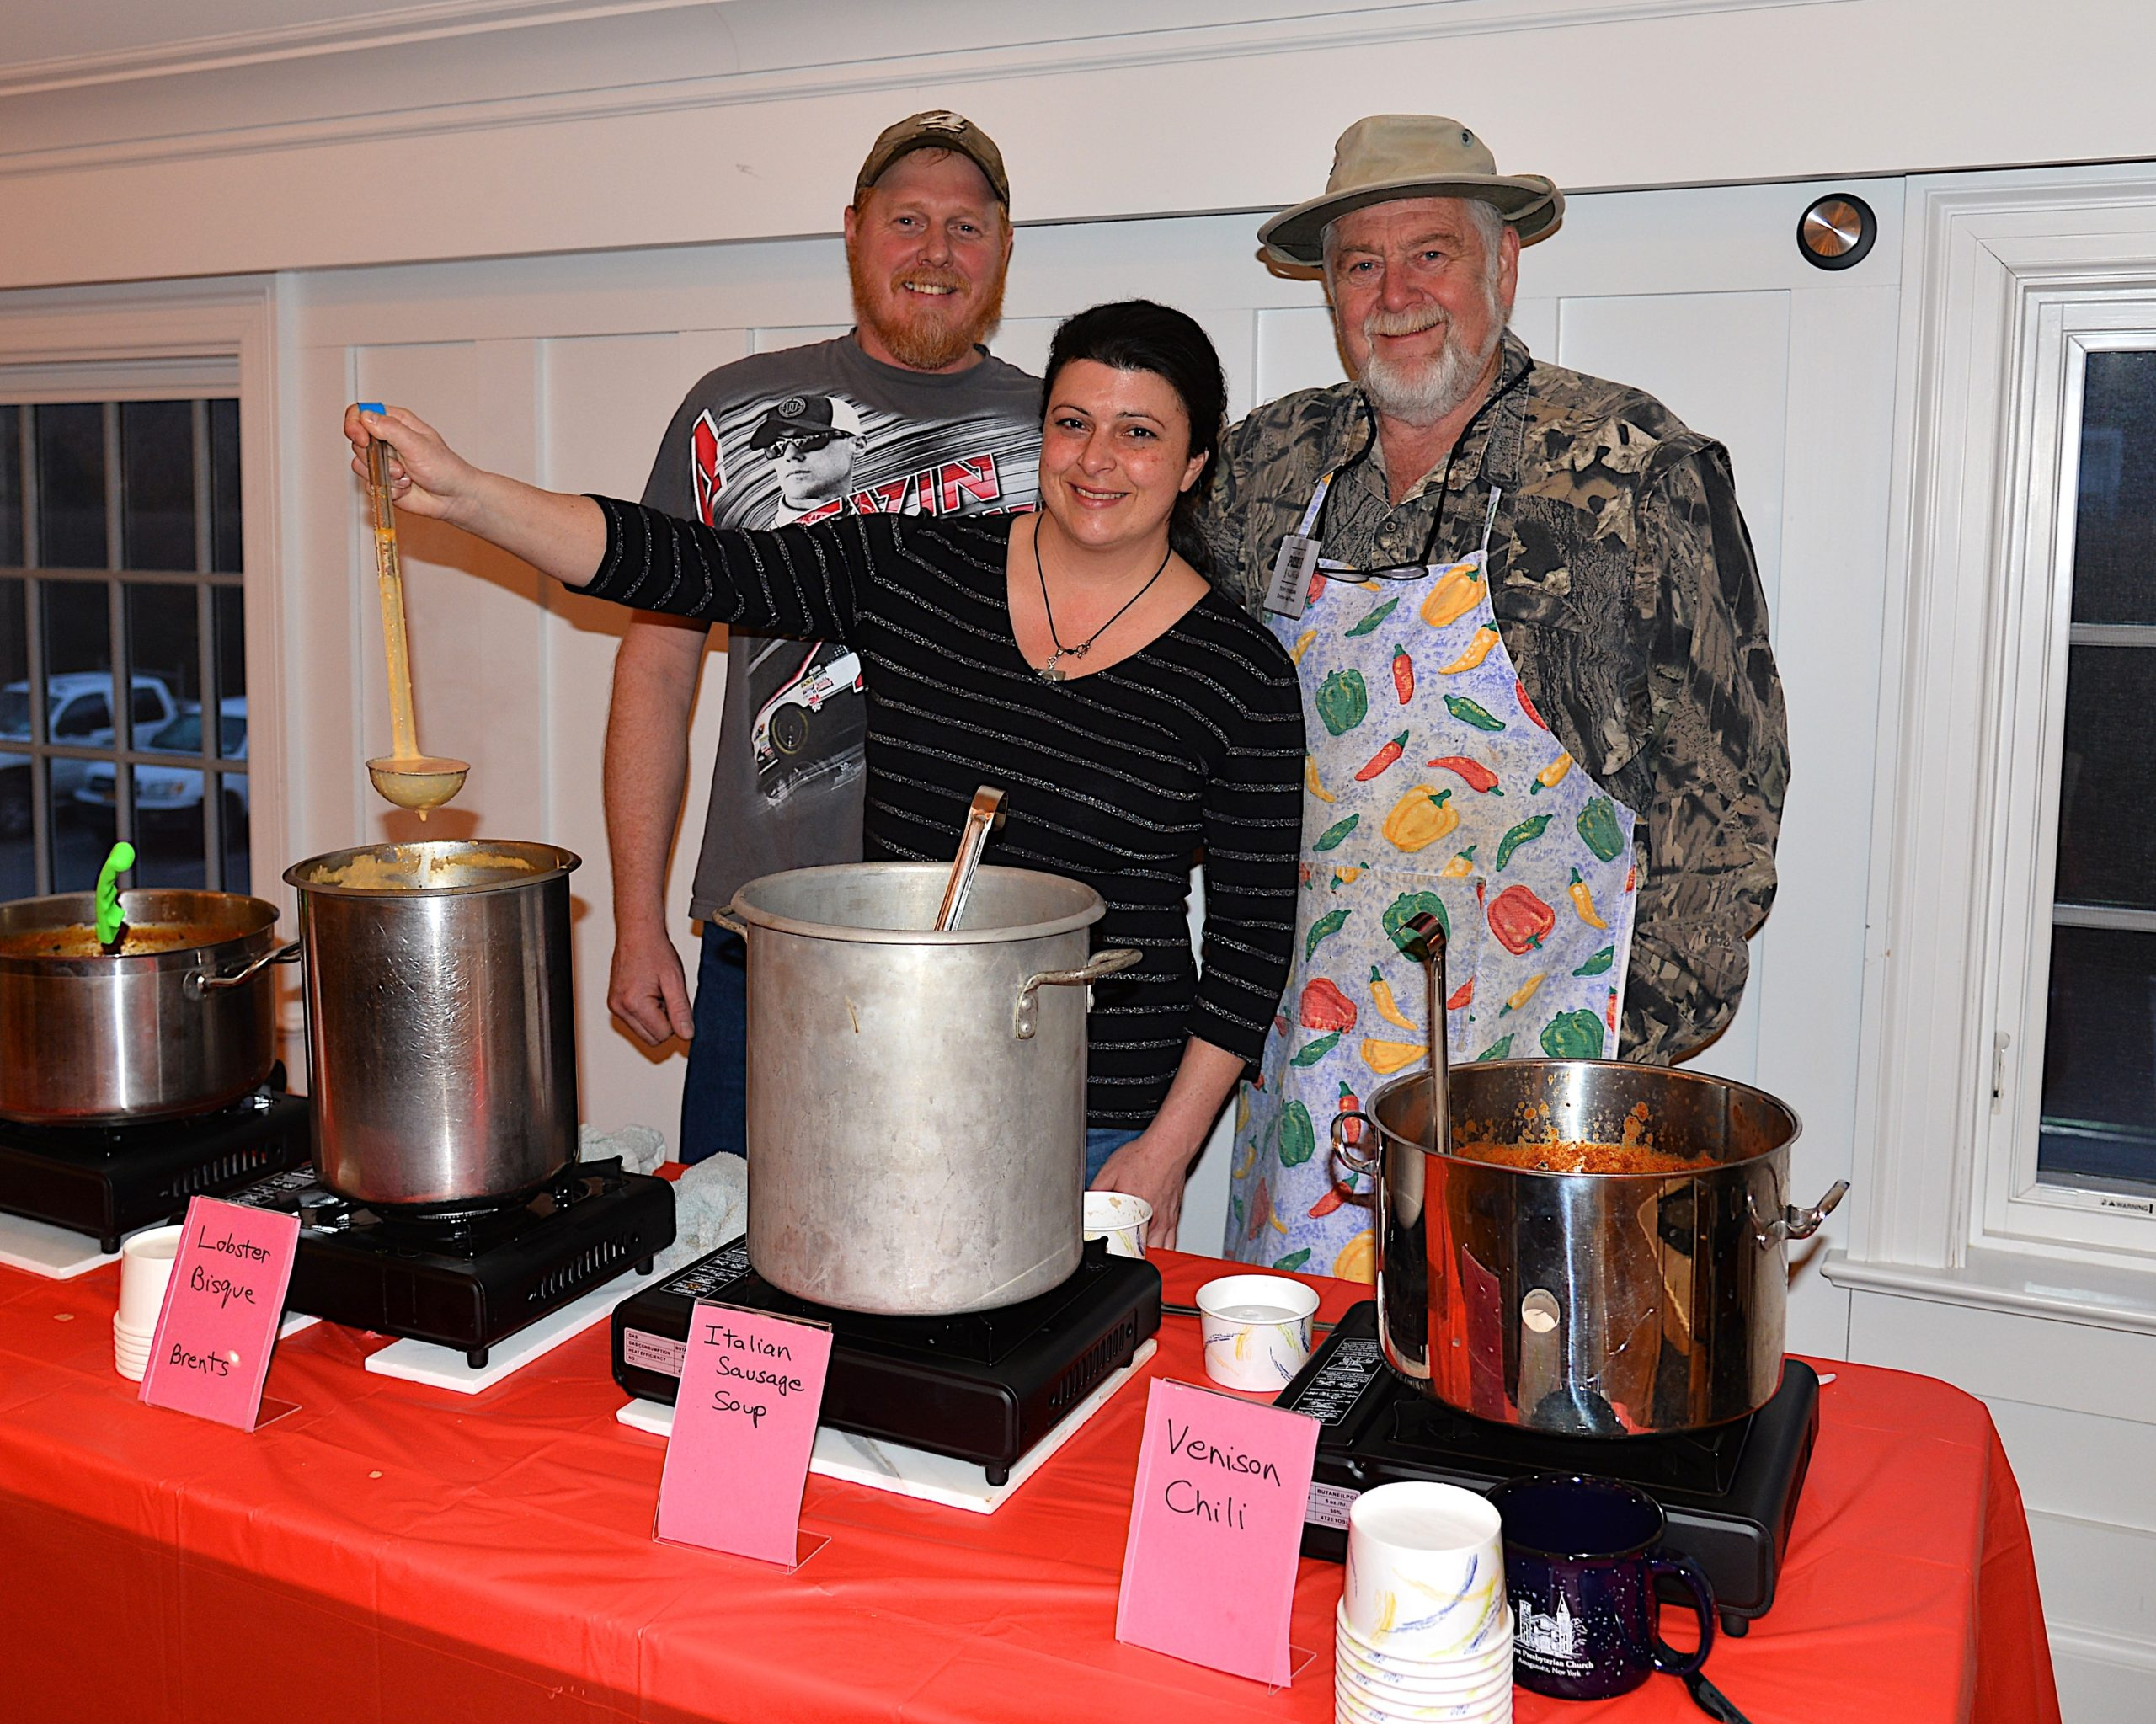 Mark and Diane Hallock, and Terry O'Riordan ready to serve at the Amagansett Presbyterian Church's Soup and Chili dinner on Saturday. KYRIL BROMLEY